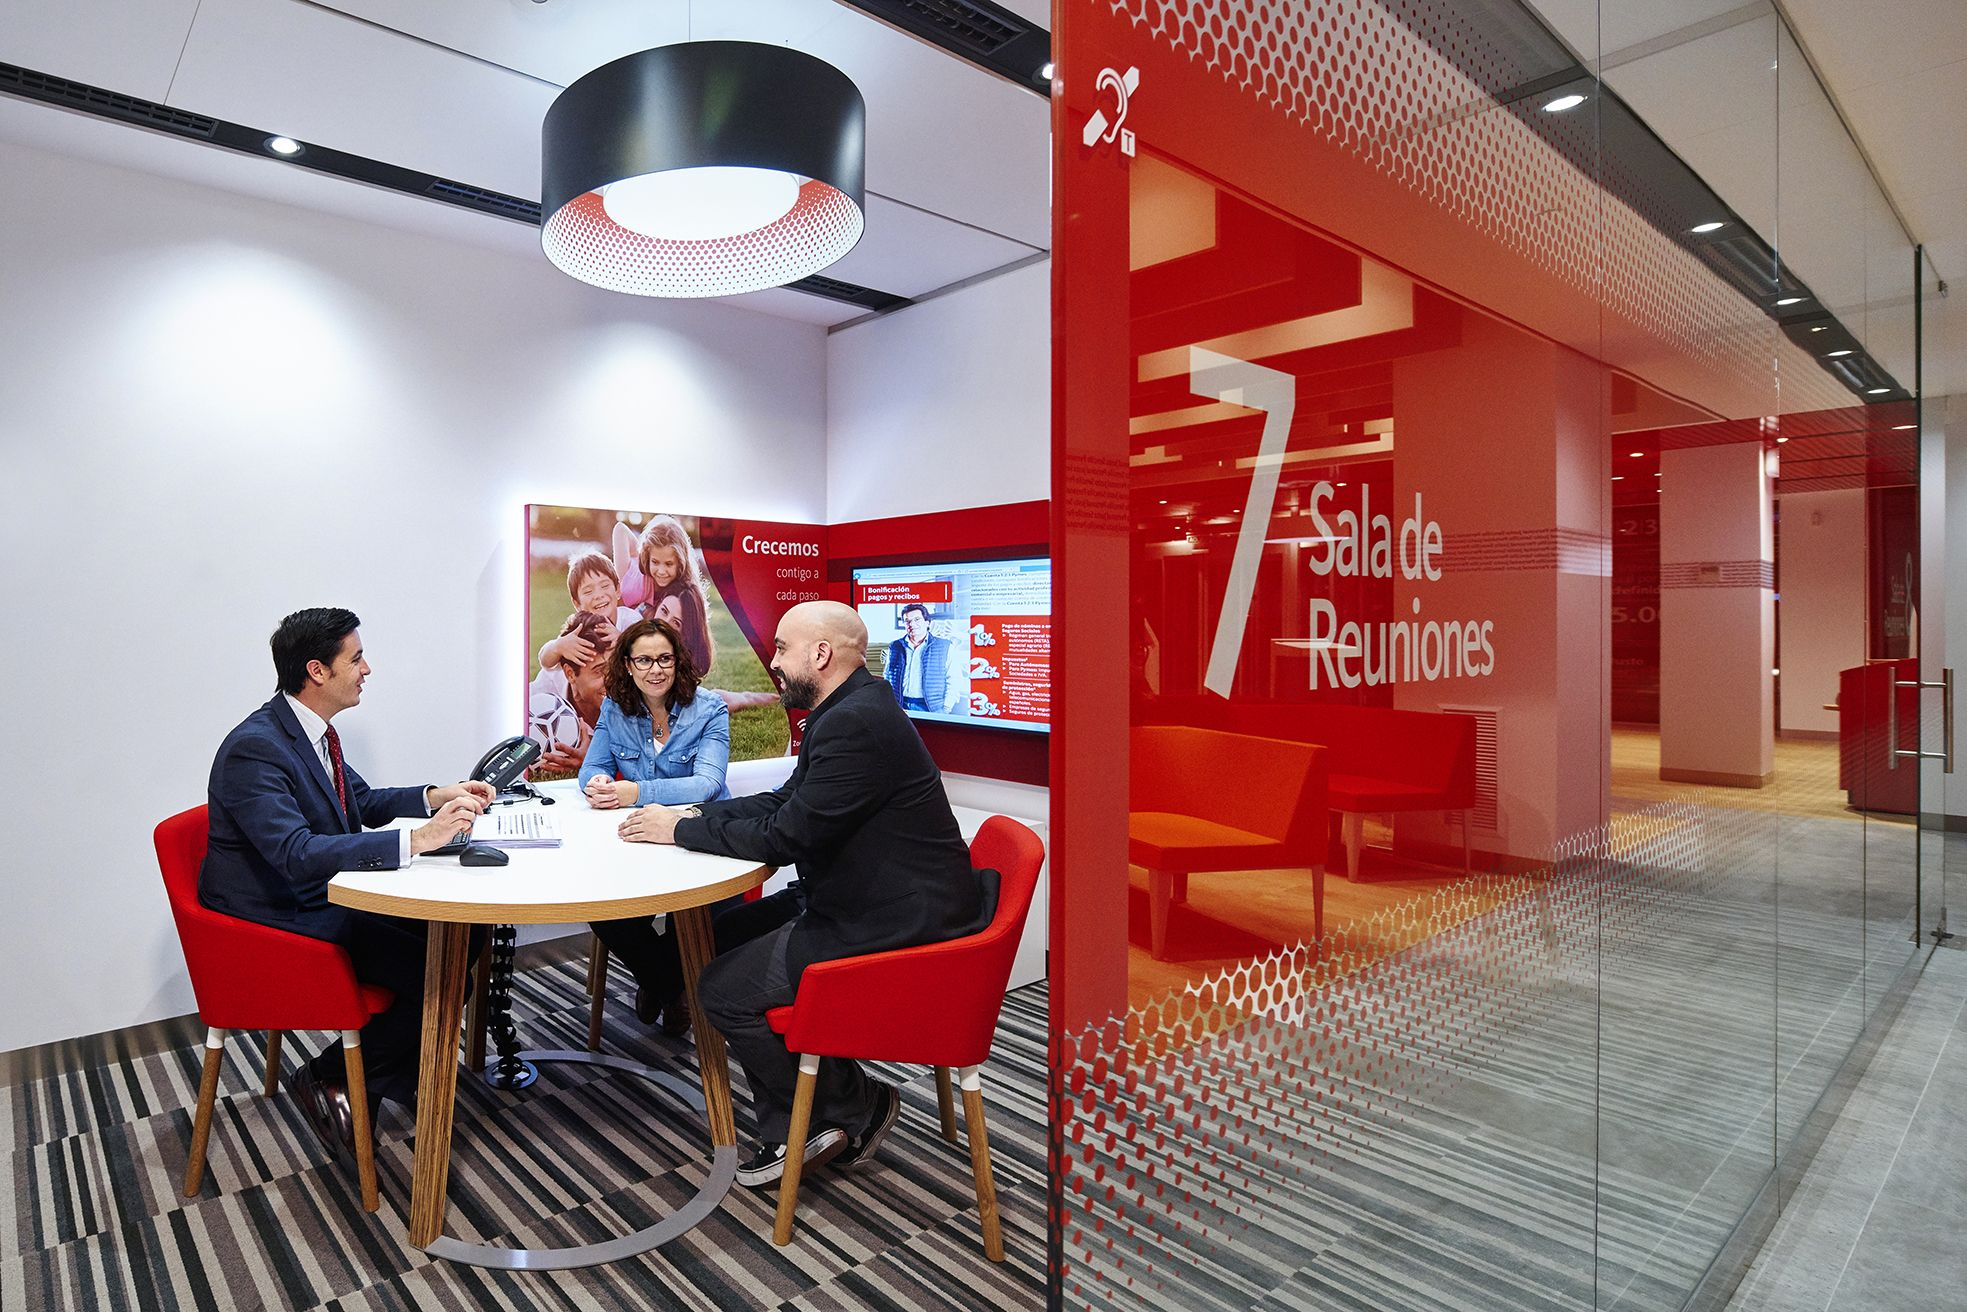 The Space Has Been Fundamentally Designed Upon The Santander Values Of Simple Personal And Fair And Provides A Bank Interior Design Bank Design Branch Design